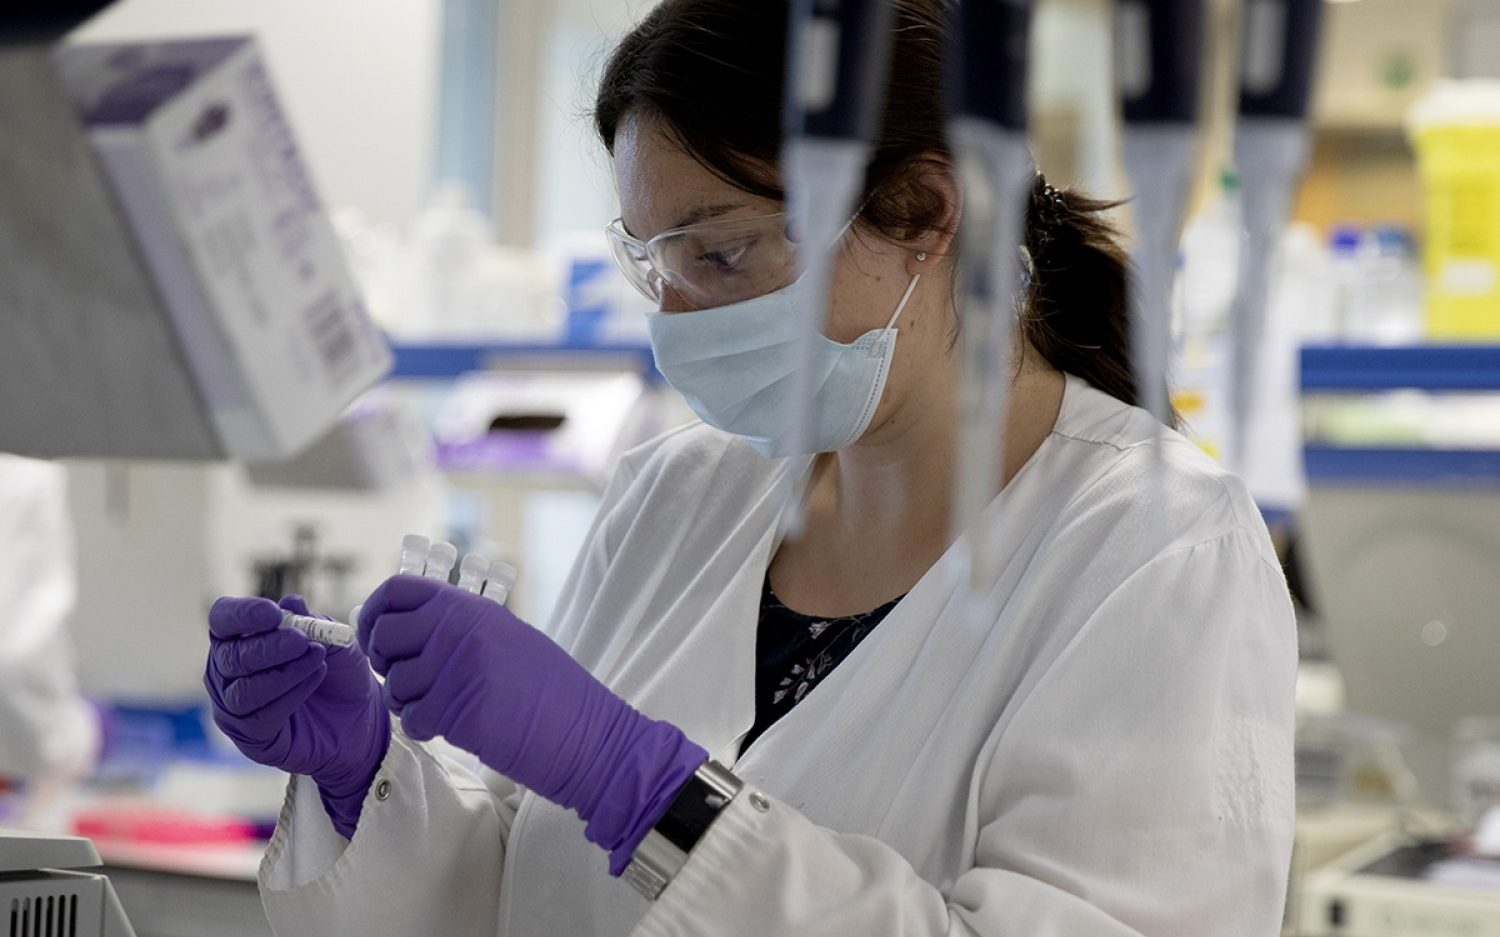 Medical research hits the front page